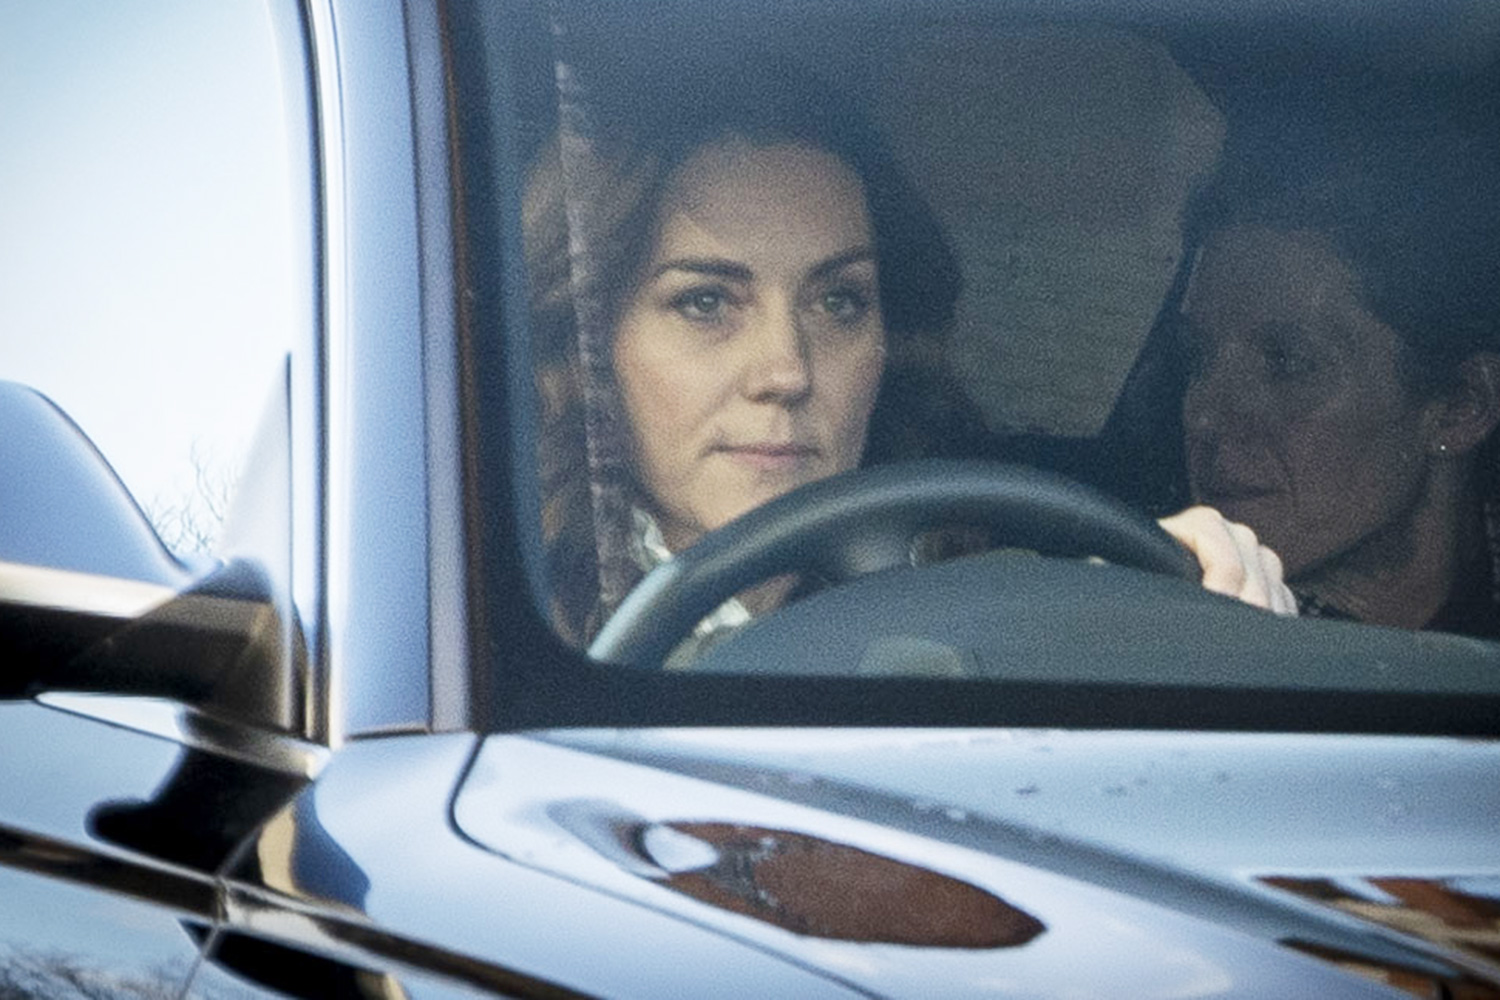 Catherine, Duchess of Cambridge pictured arriving at Kensington Palace today on her birthday.